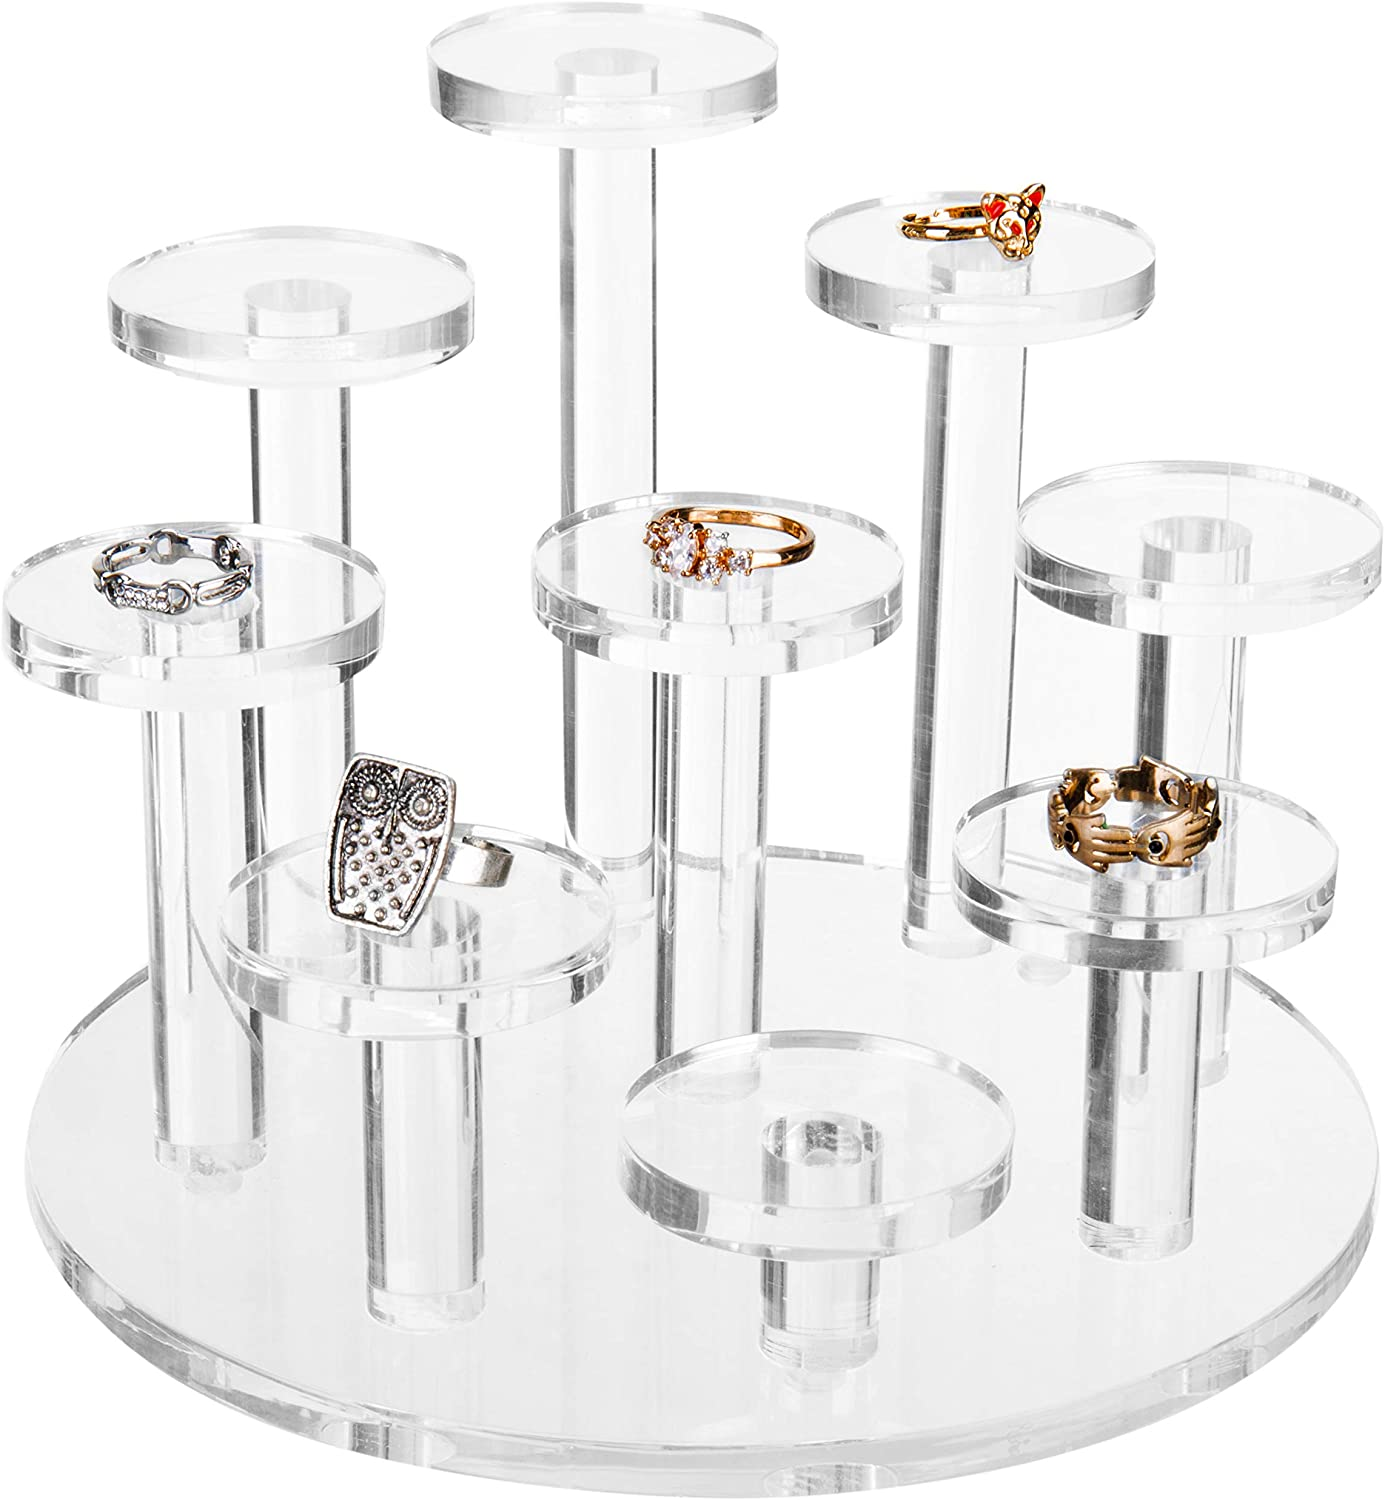 MyGift 9-Tier Clear Acrylic Ring Organizer Display Riser, Dresser Top Jewelry Stand